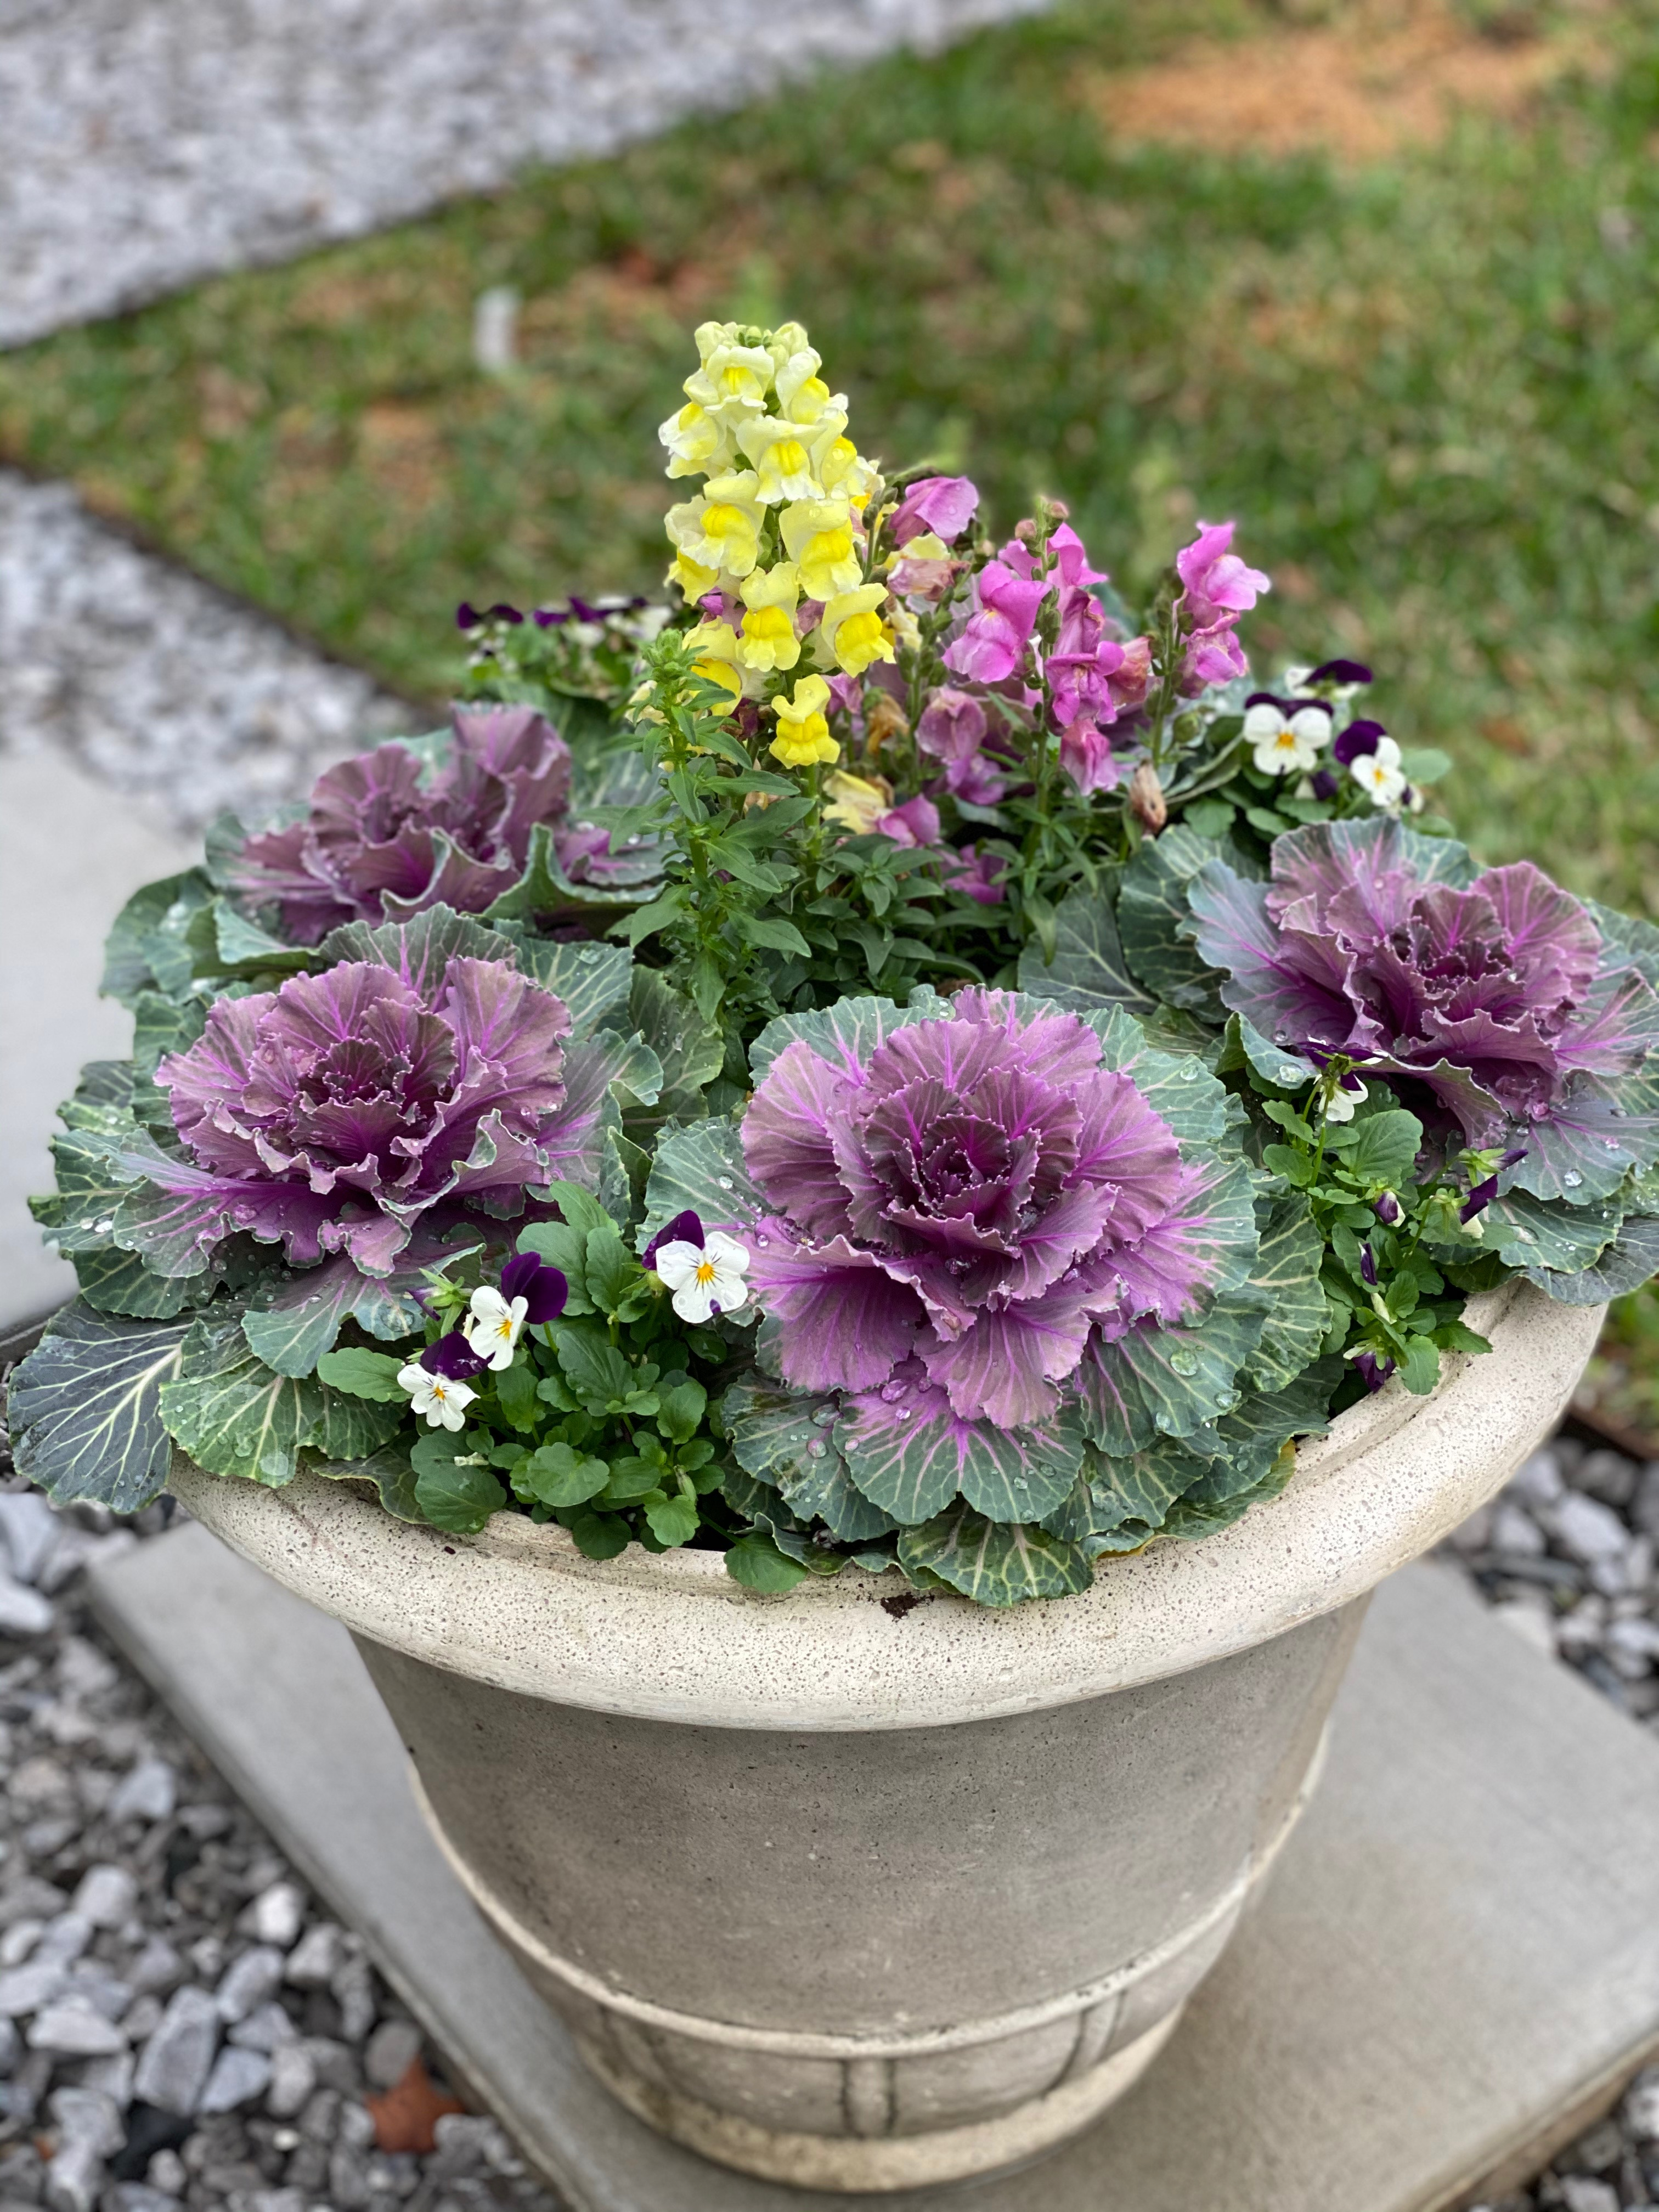 Ornamental kale snapdragons and sorbet violas make a dazzling container plant display.JPG thumbnail